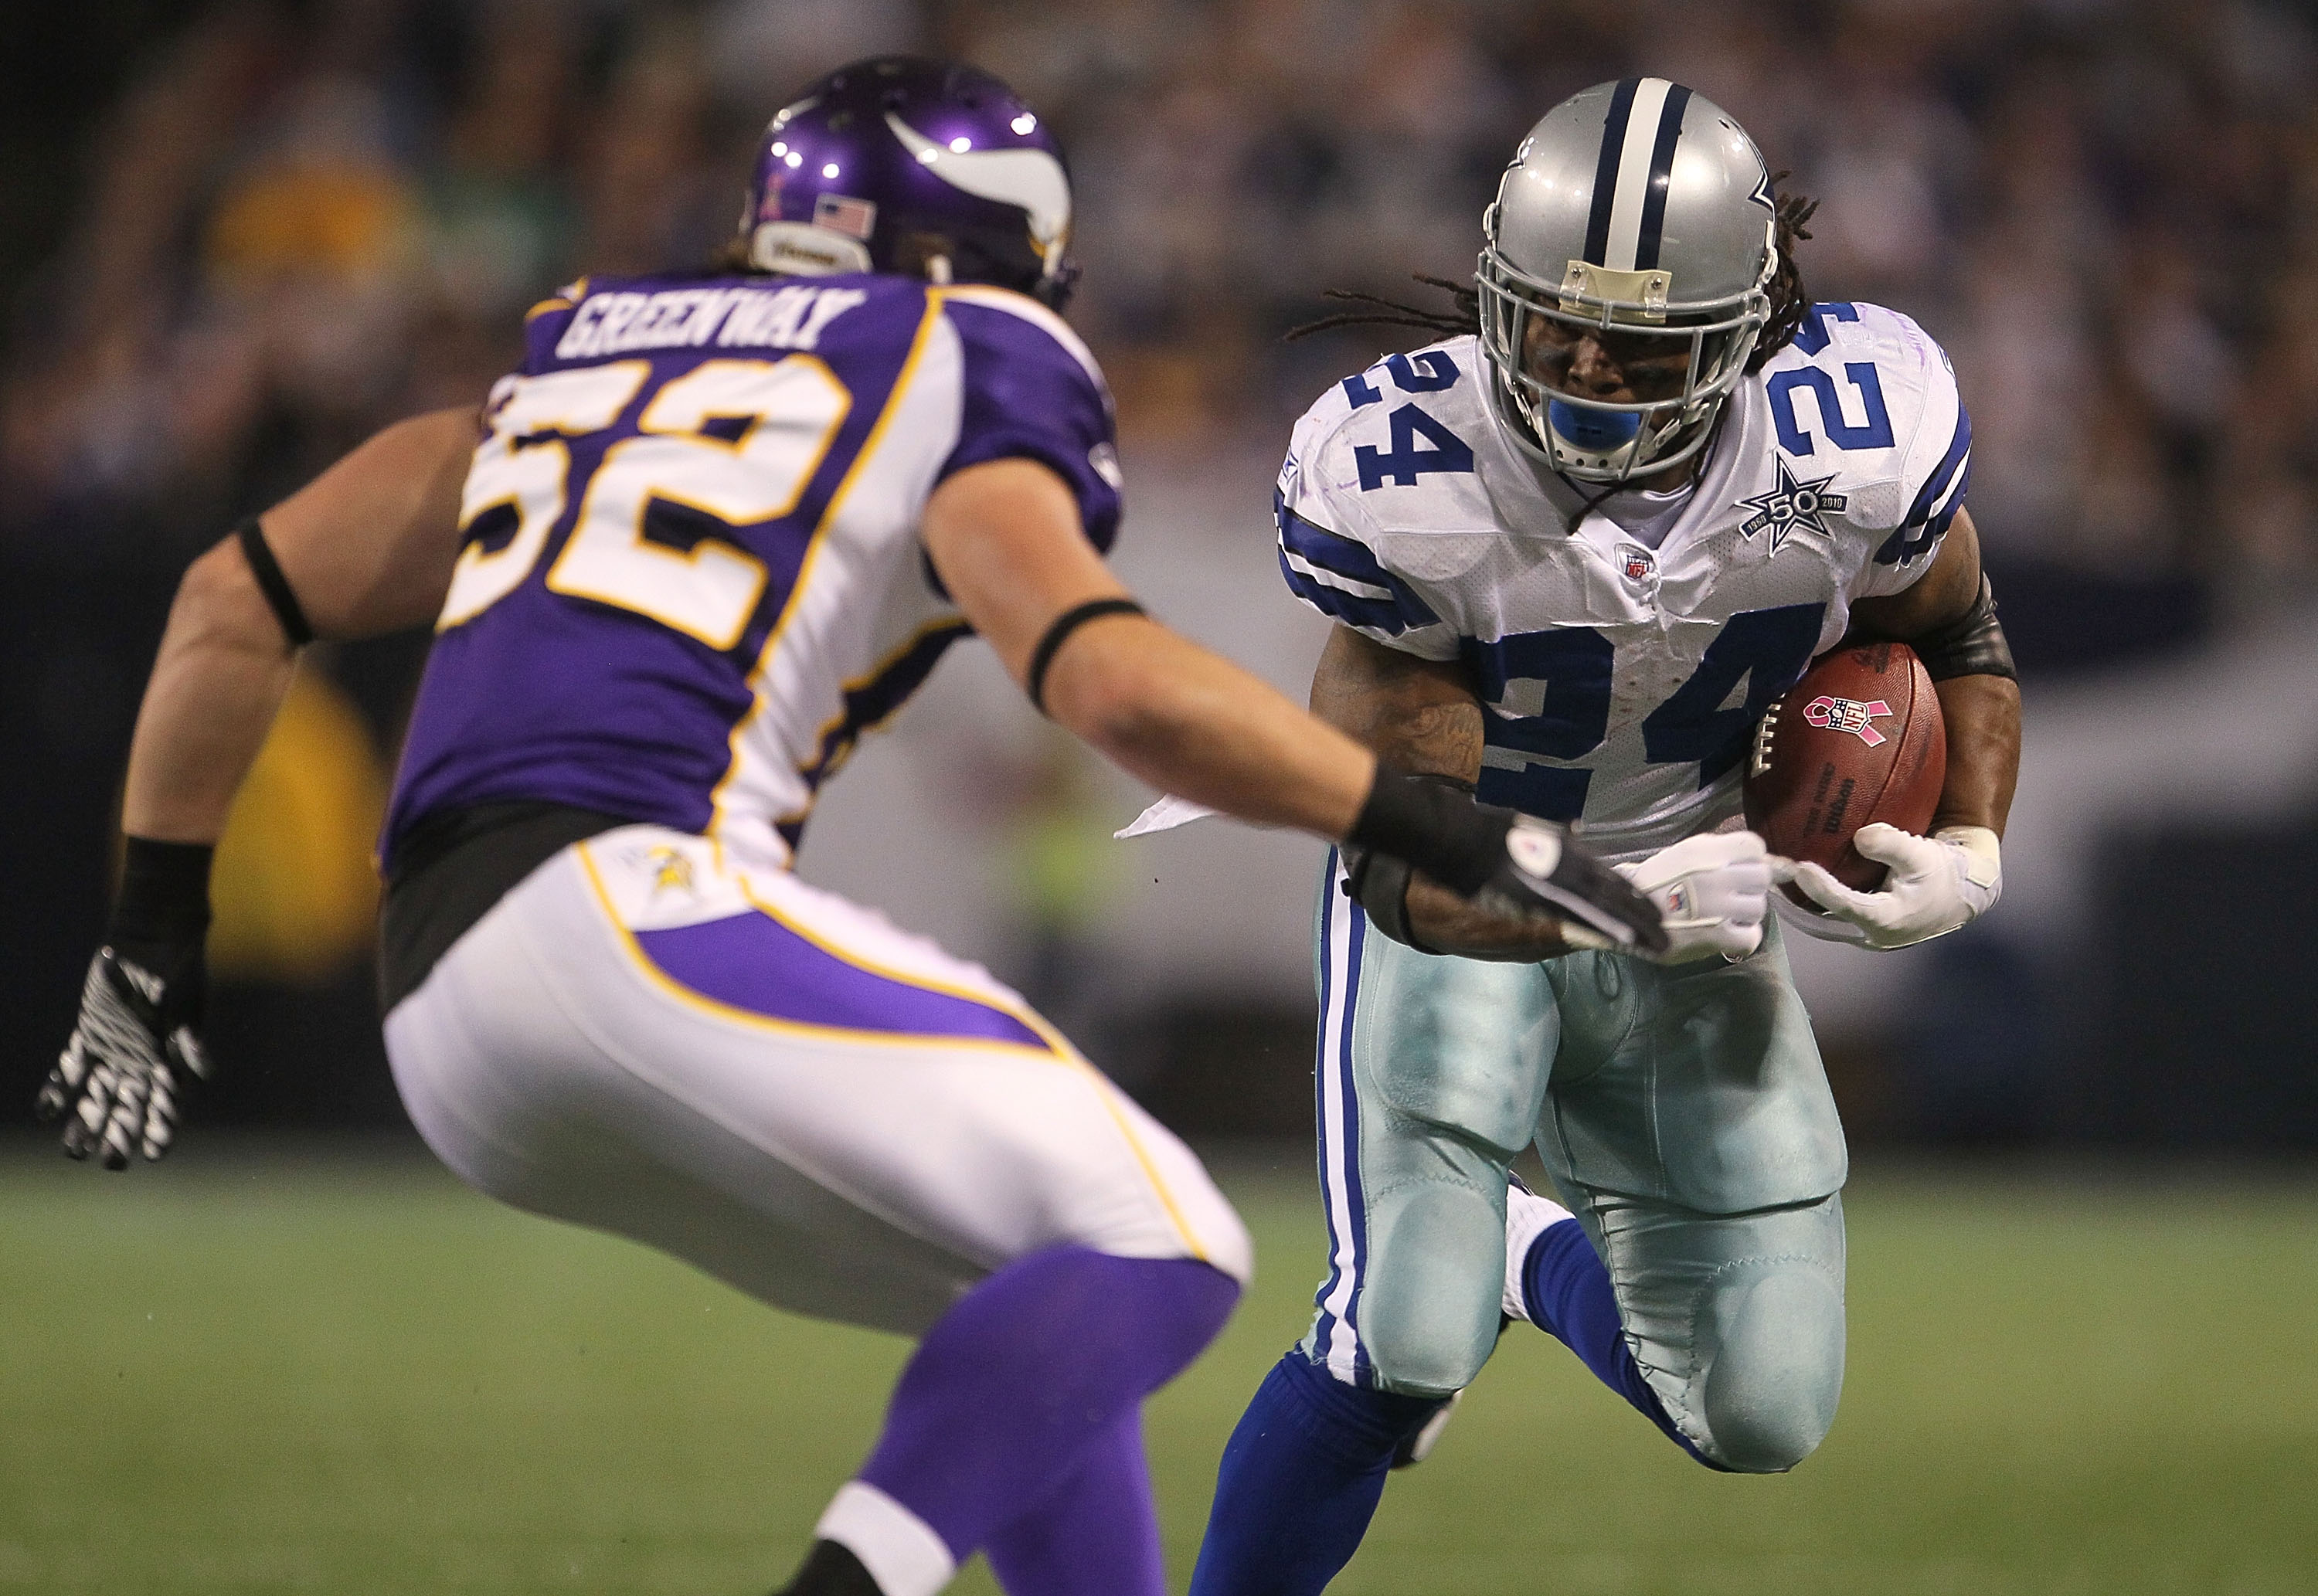 MINNEAPOLIS - OCTOBER 17:  Marion Barber #24 of the Dallas Cowboys runs with the ball during the game against the Minnesota Vikings at Mall of America Field on October 17, 2010 in Minneapolis, Minnesota.  (Photo by Jeff Gross/Getty Images)